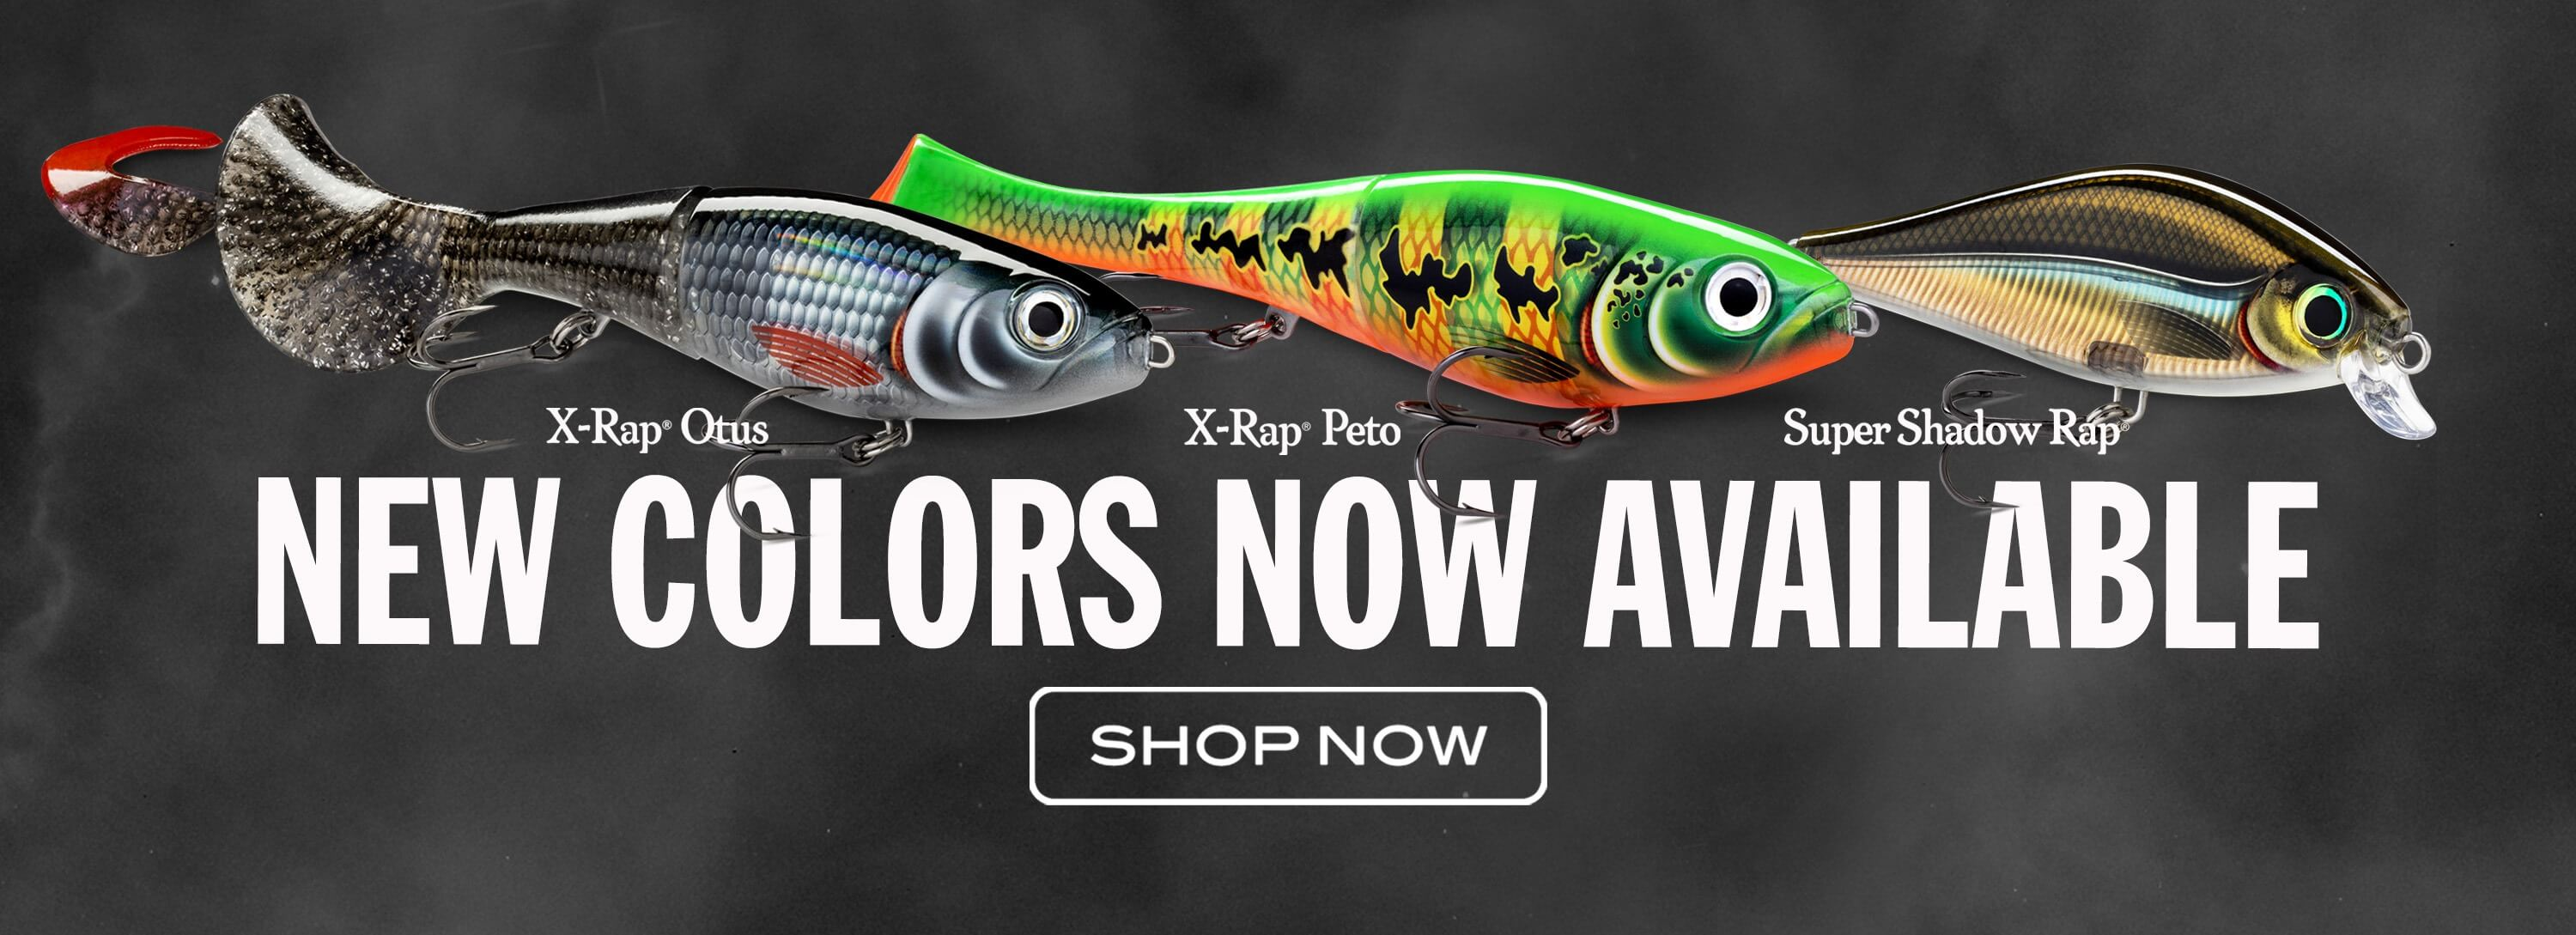 New colors available